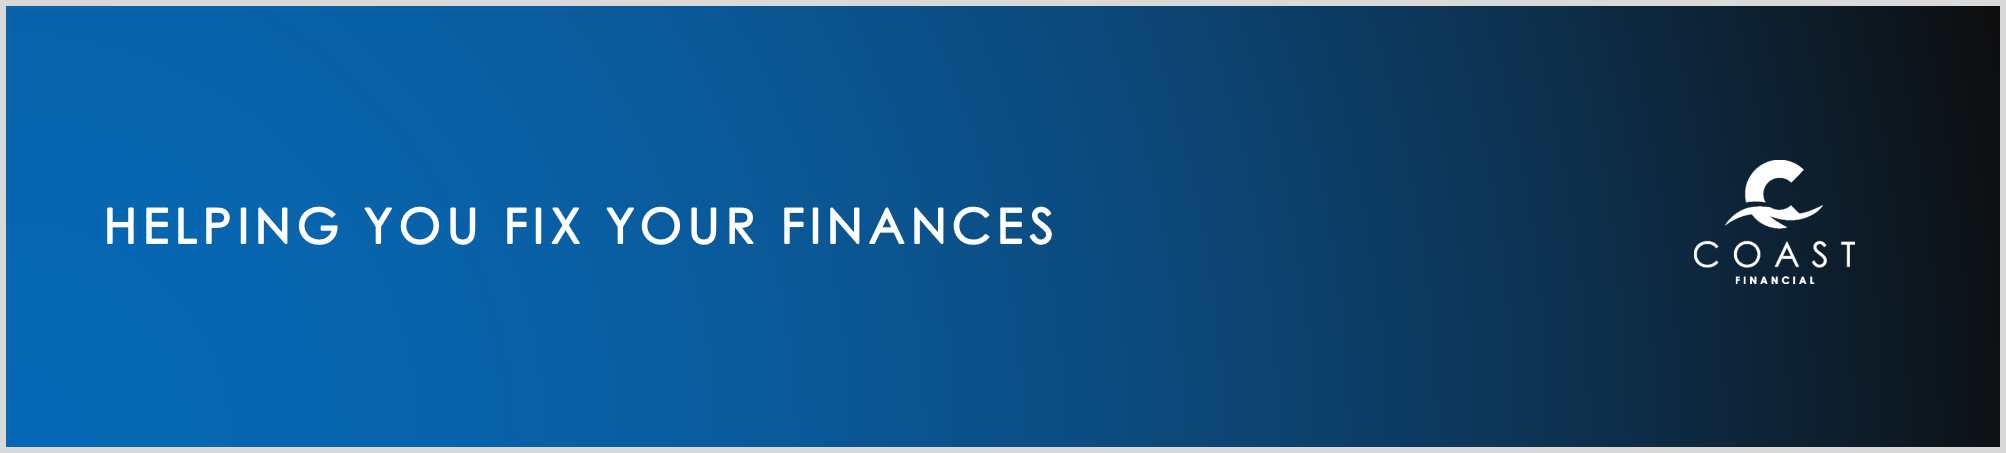 Fixing Finances - Coast Financial UK